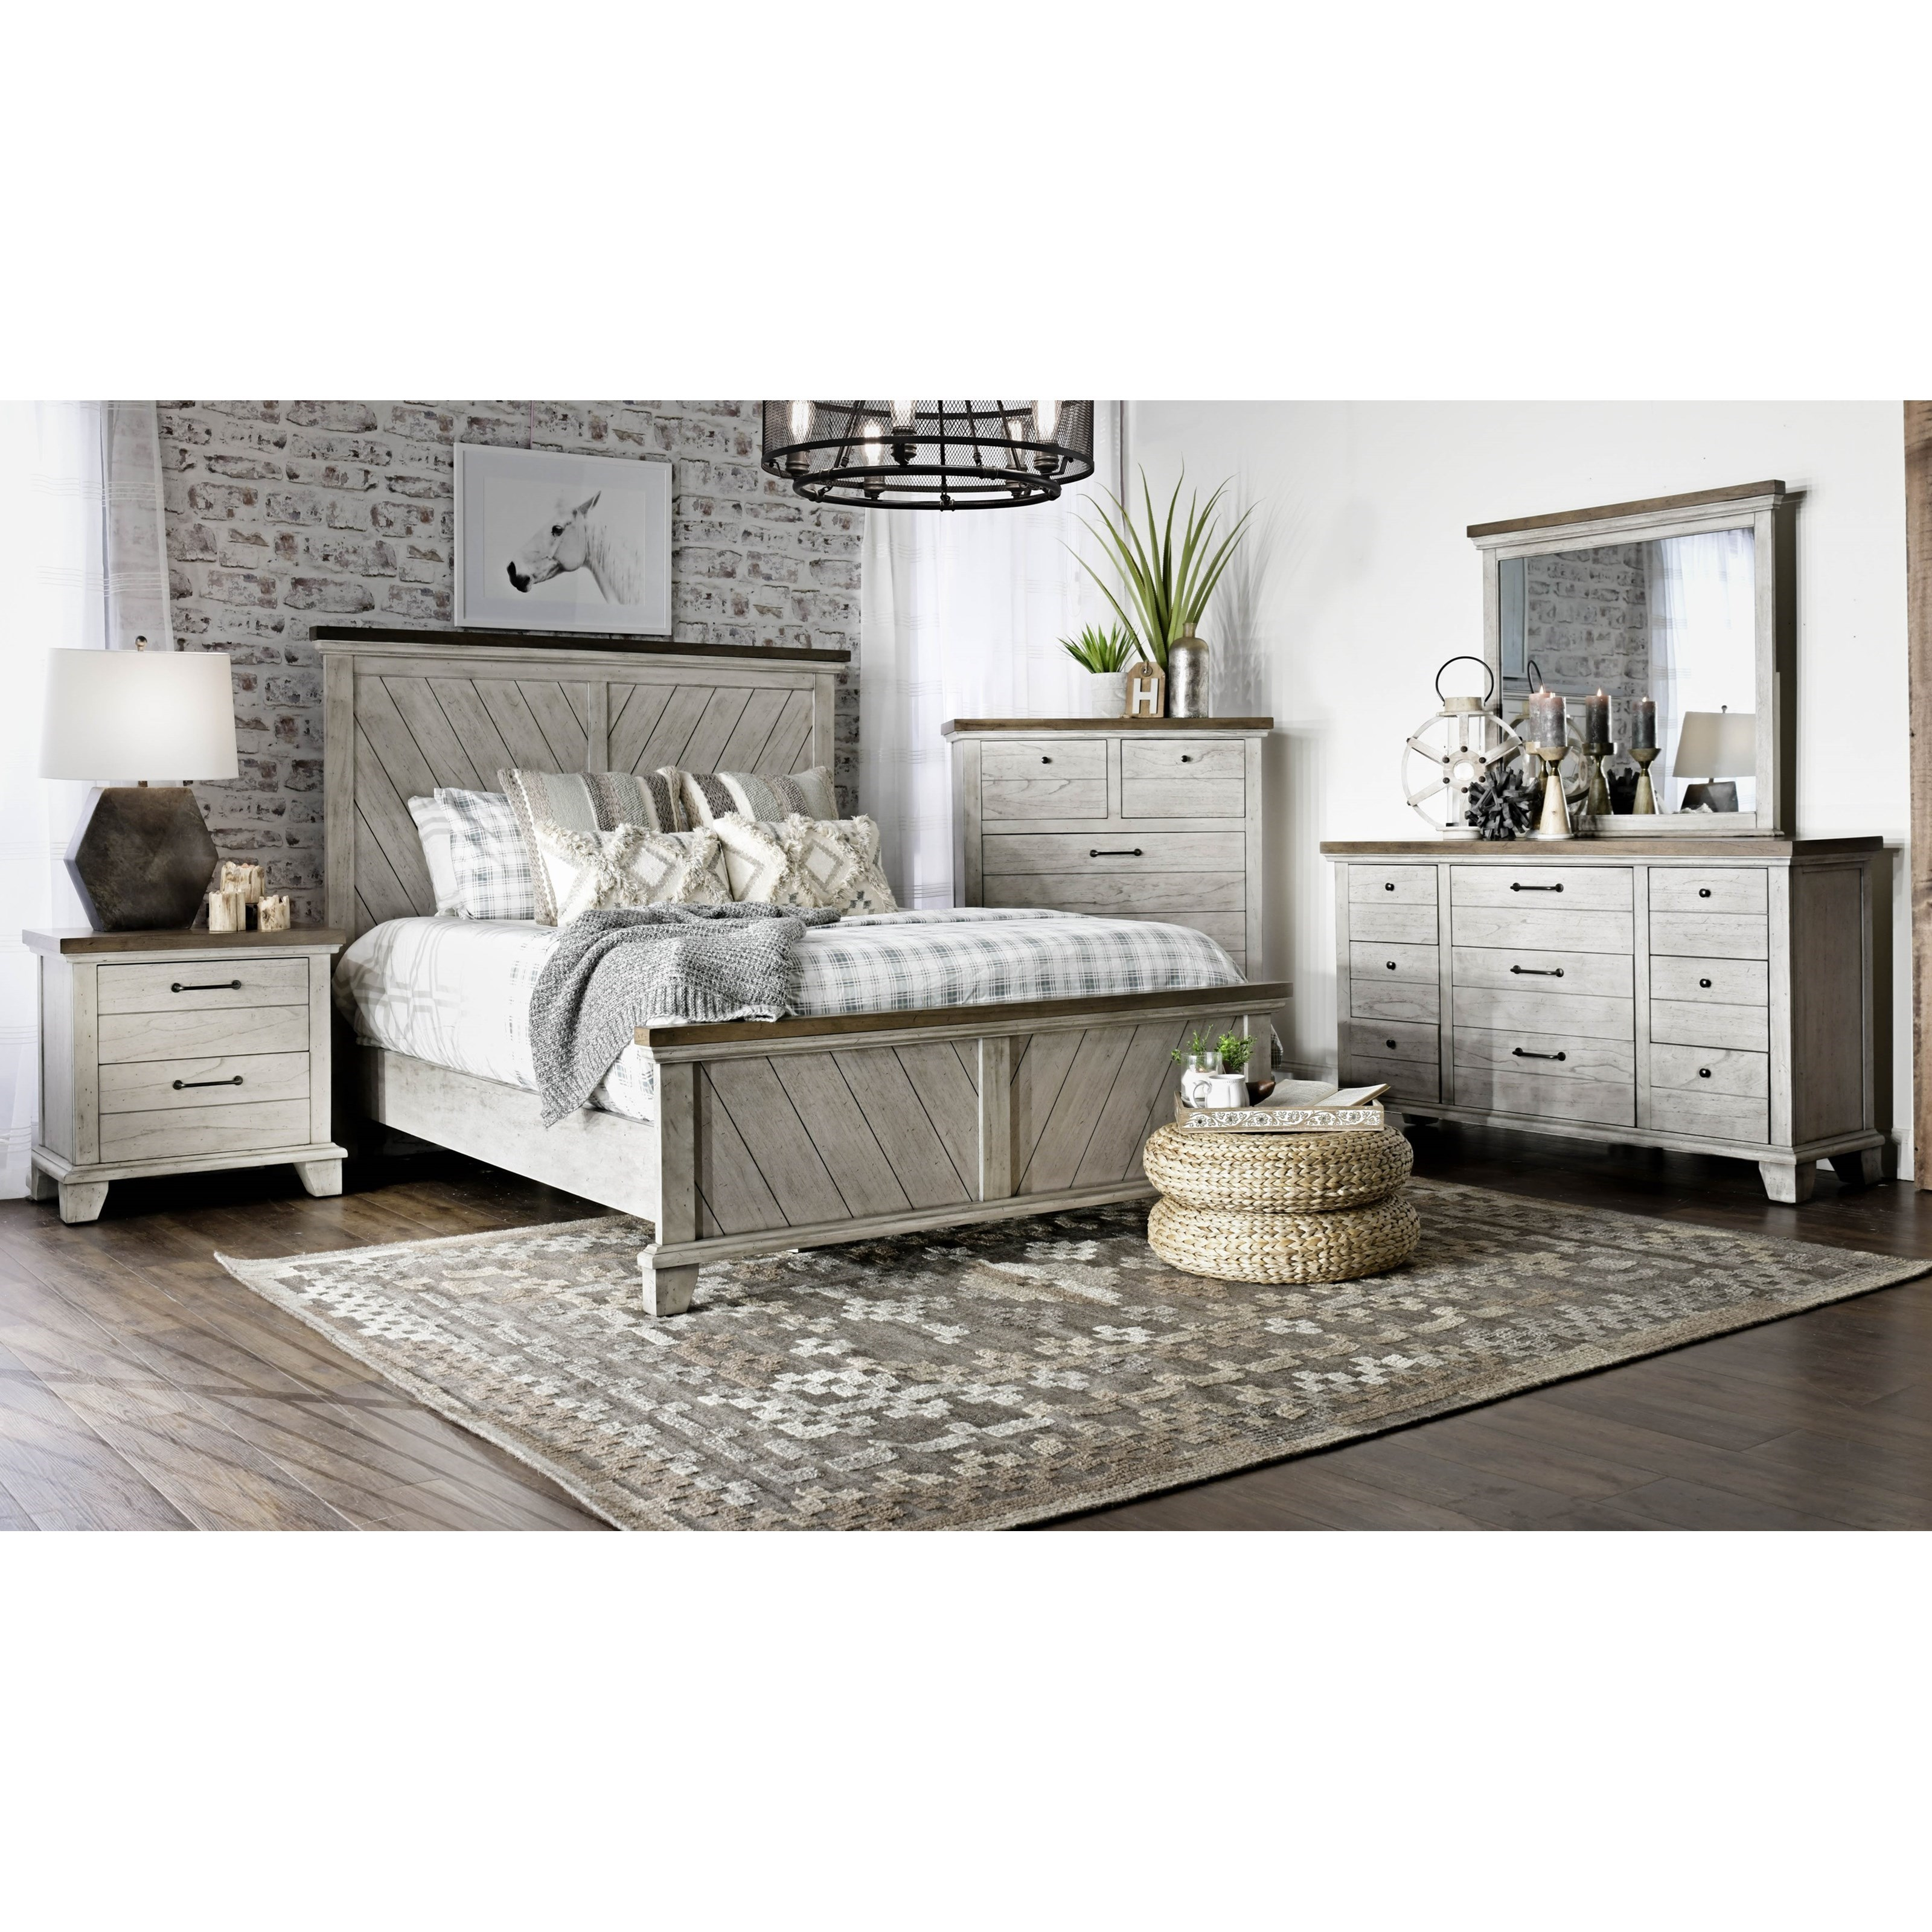 Bear Creek Queen Bedroom Group by Star at EFO Furniture Outlet